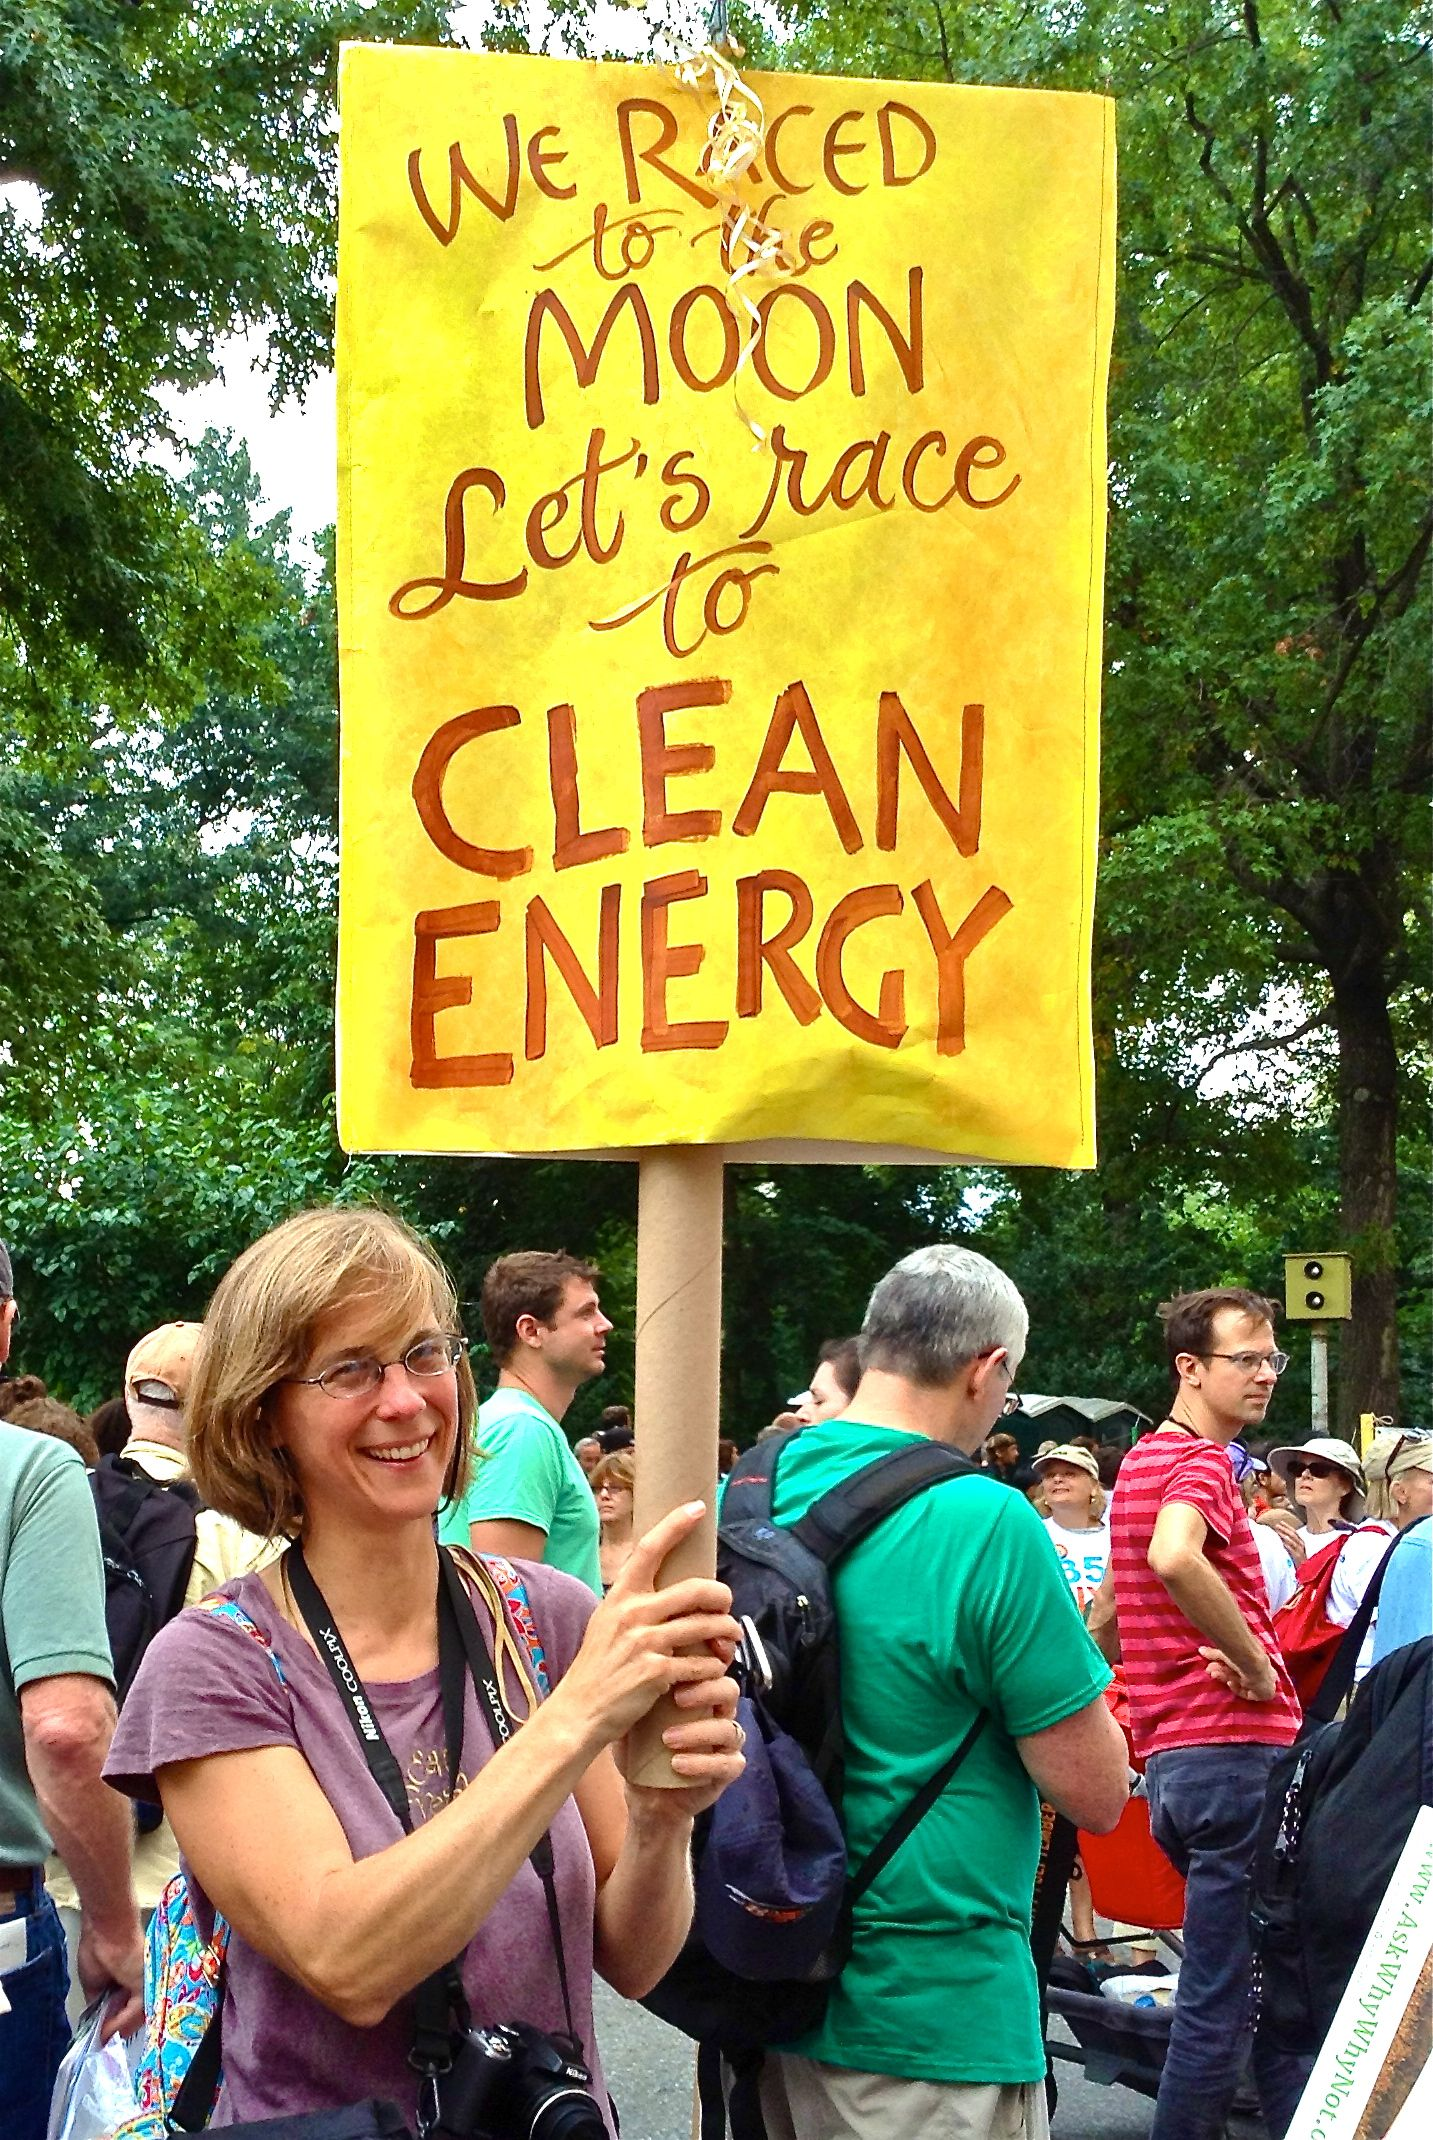 We Raced To The Moon Let S Race To Clean Energy Fantastic Sign At The Peoplesclimate March Nyc Climate2014 Climate Change Protest Signs Save Earth